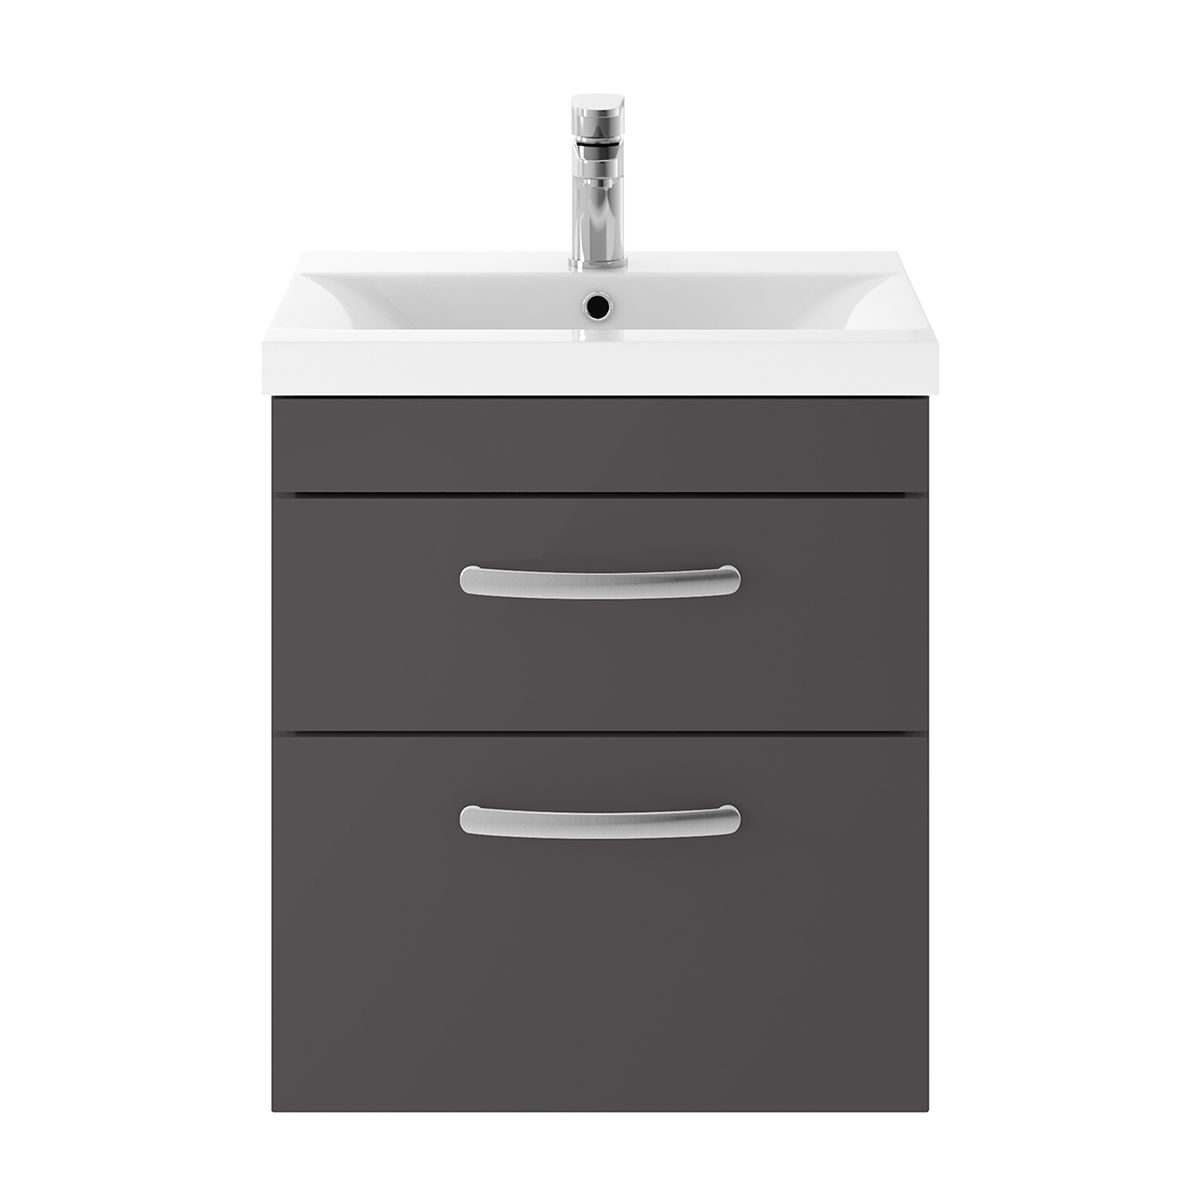 Nuie Athena Gloss Grey 2 Drawer Wall Hung Unit 500mm with Mid Edge Basin